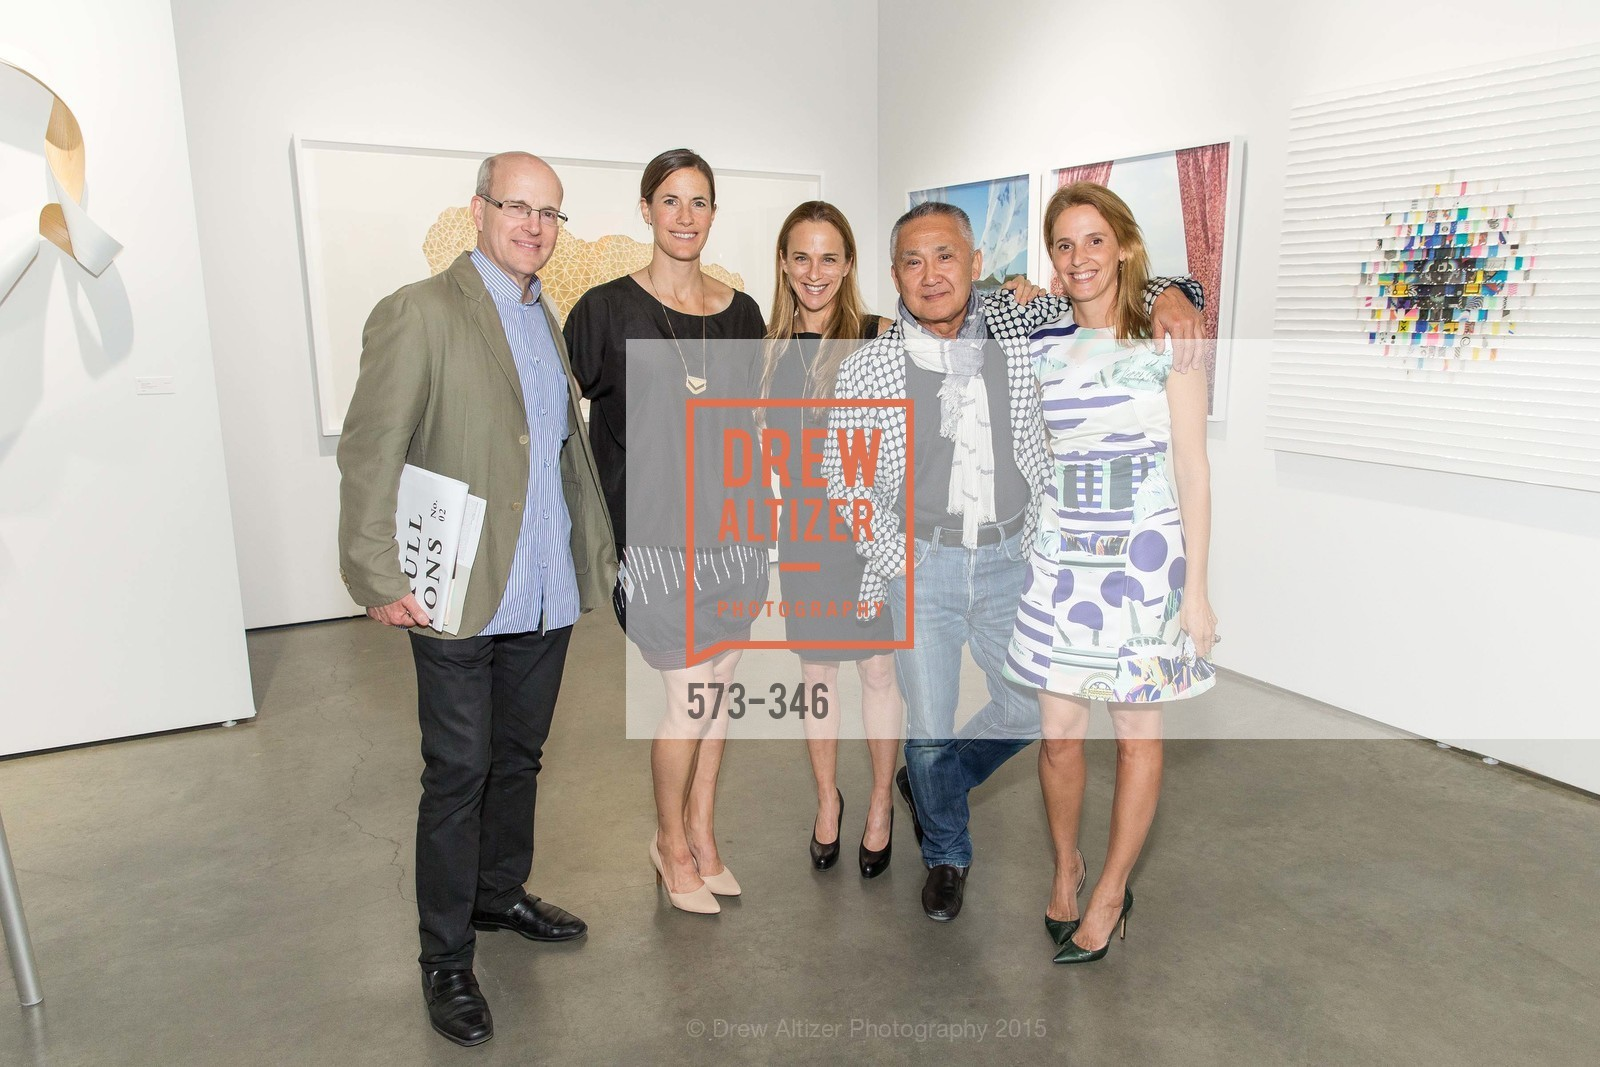 Mark Wolcott, Svea Soll, Stephanie Breitbard, Koichi Hara, Evie Simon, Art Miami Presents: Art Silicon Valley, San Mateo County Event Center. 1346 Saratoga Dr, October 8th, 2015,Drew Altizer, Drew Altizer Photography, full-service agency, private events, San Francisco photographer, photographer california